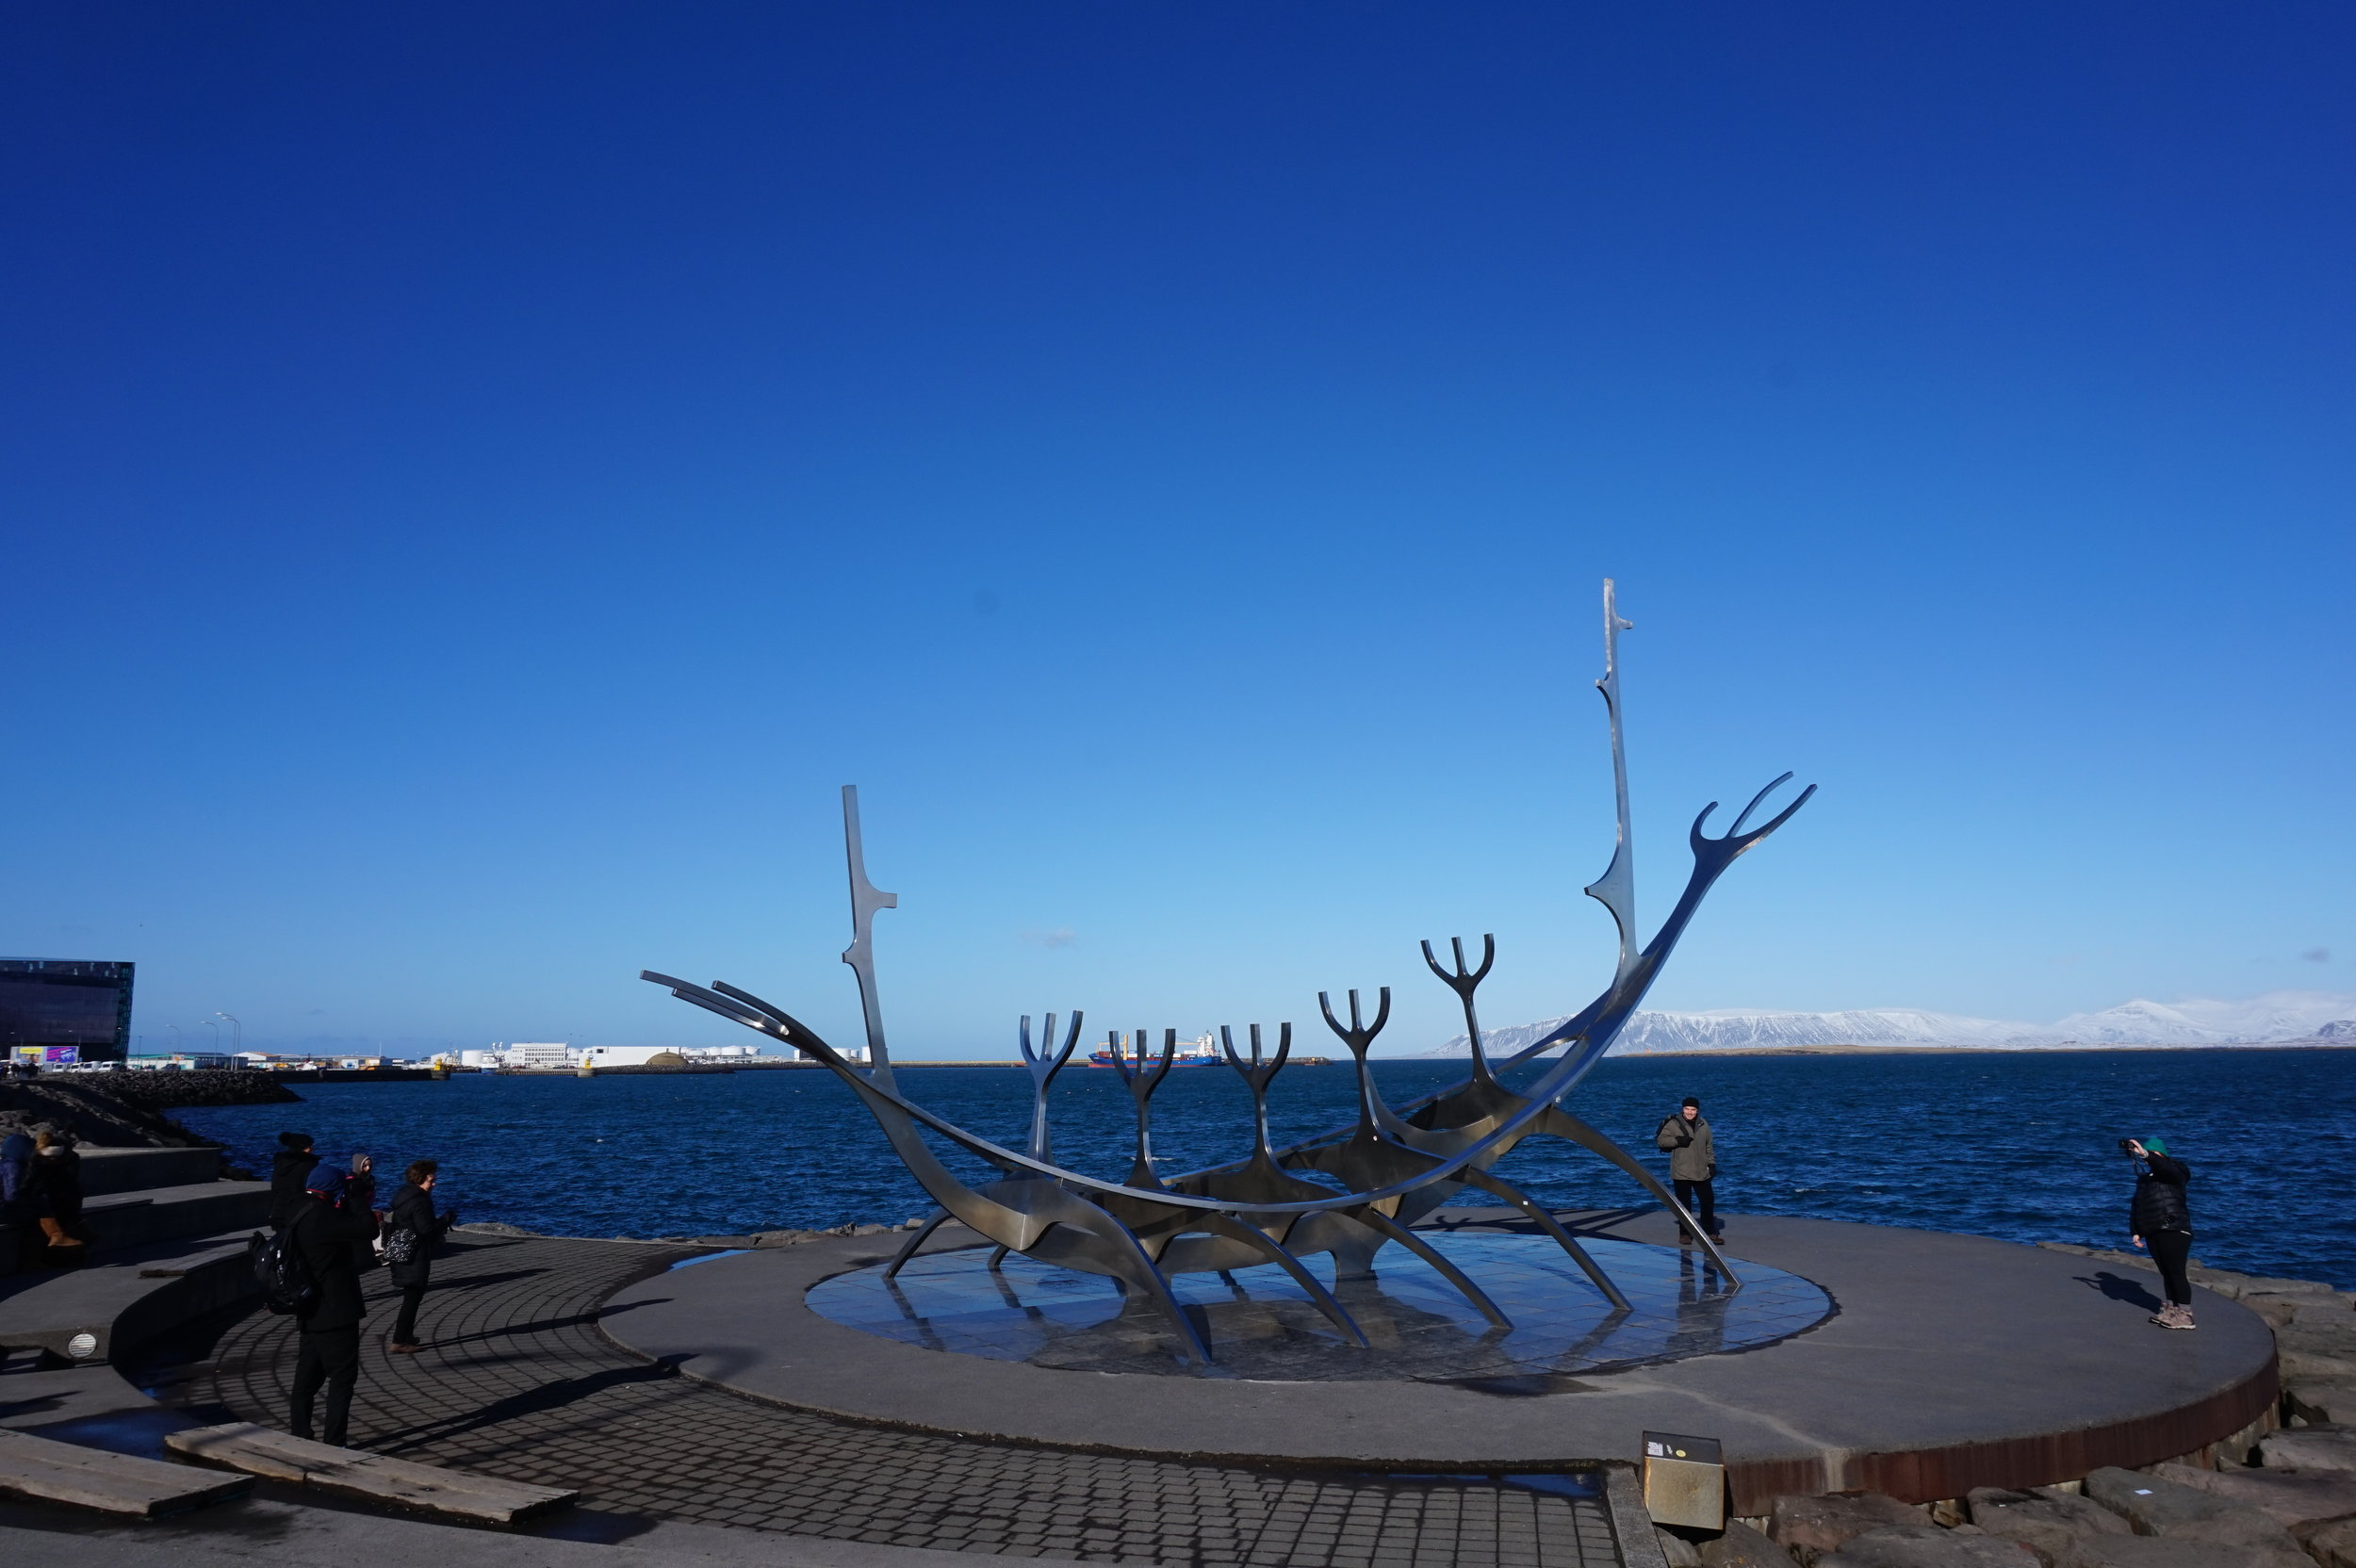 The Solfar (Sun Voyager) Sculpture on Reykjavik's waterfront is a free attraction in the city, and wouldn't be out of place on a budget itinerary.